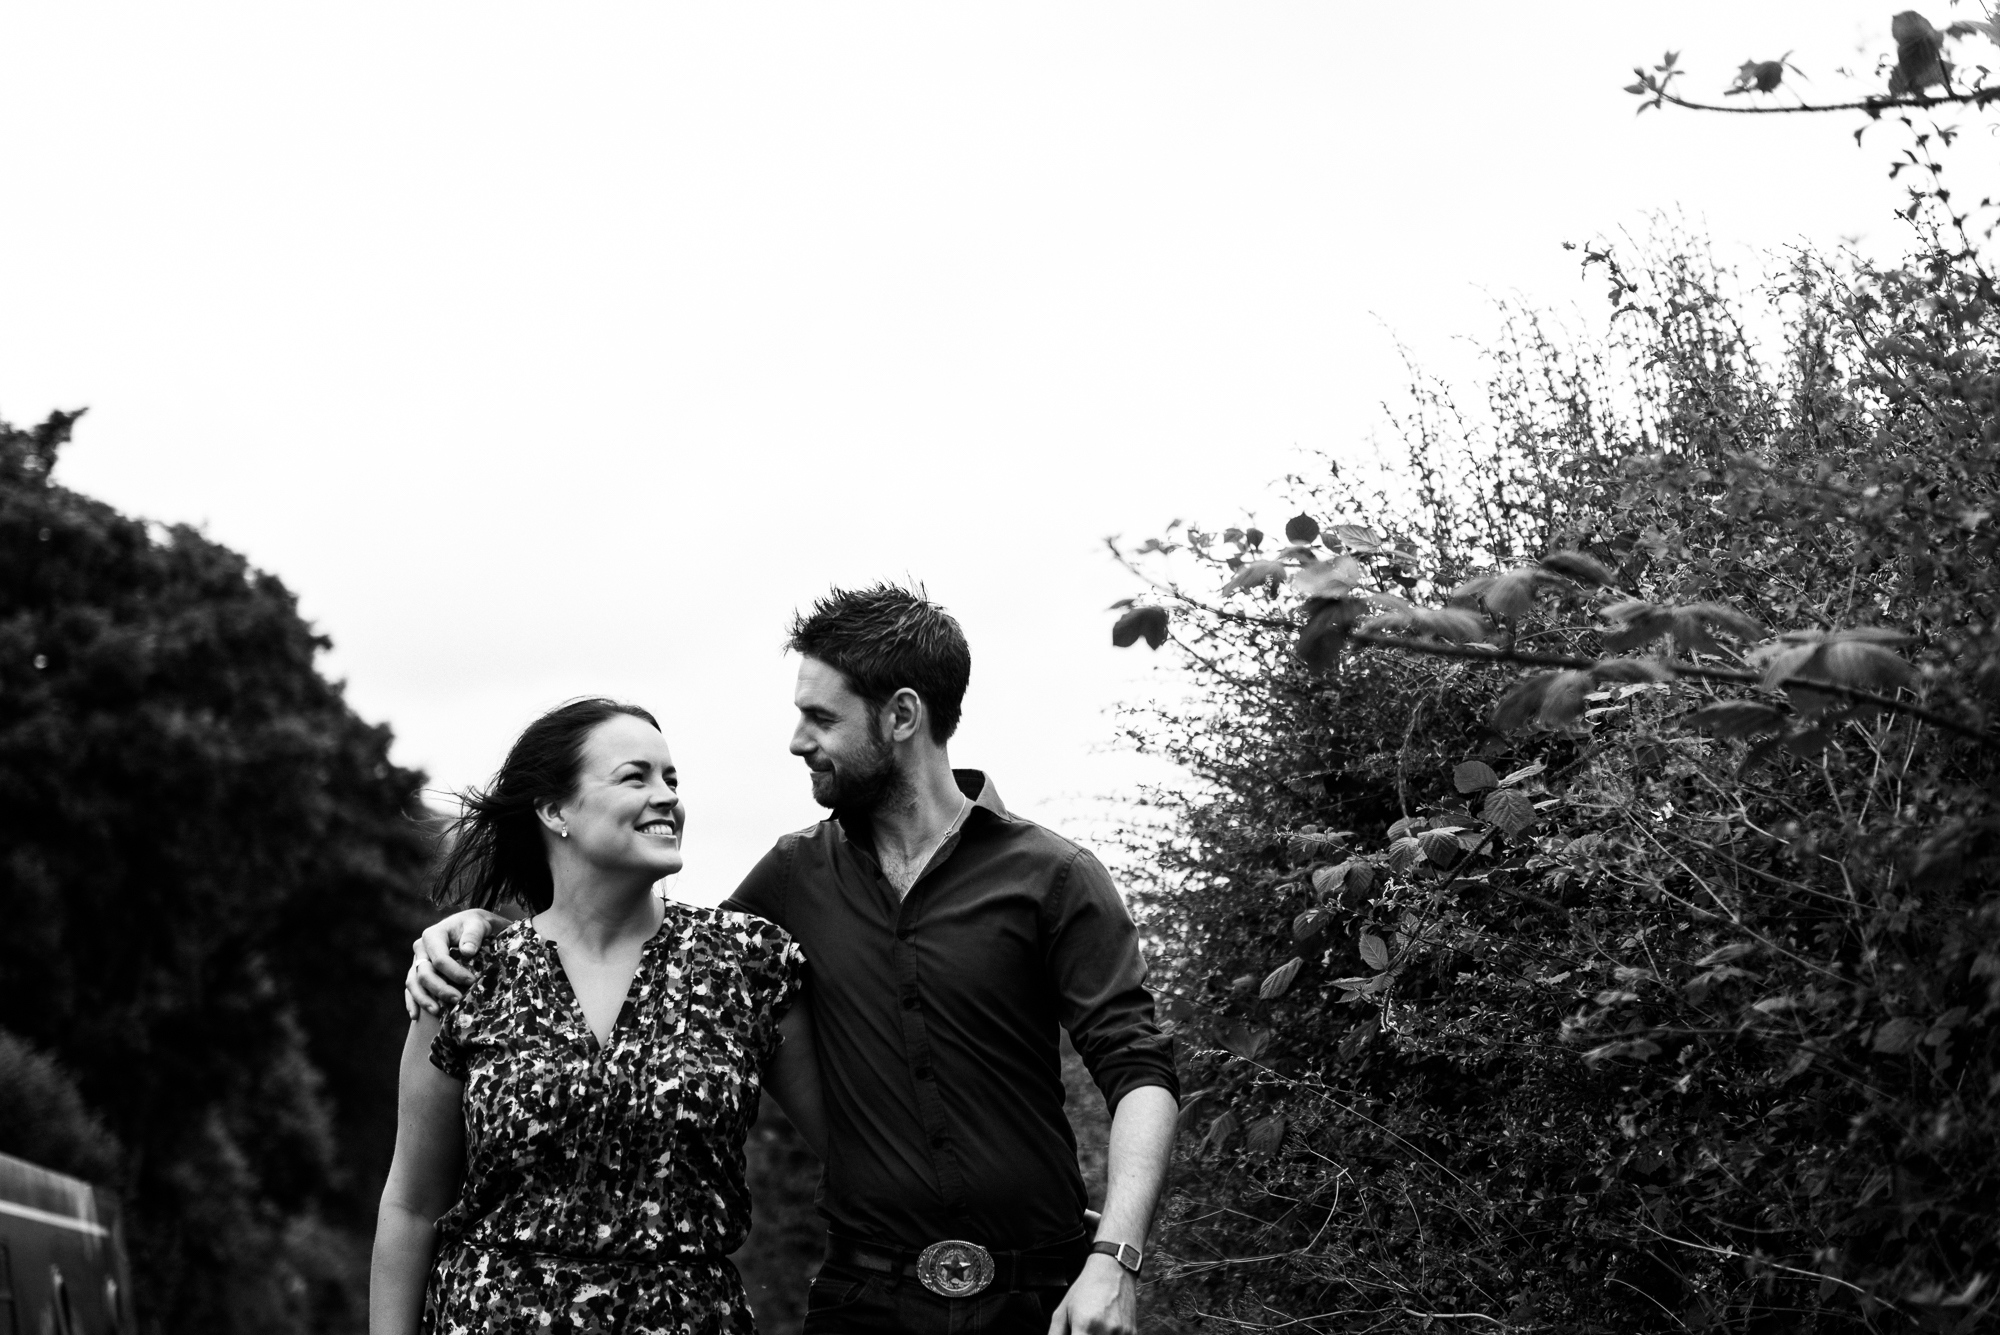 Pre-Wedding Session Engagement Photos Couple Shoot English countryside Canal - Jenny Harper Photography-6.jpg